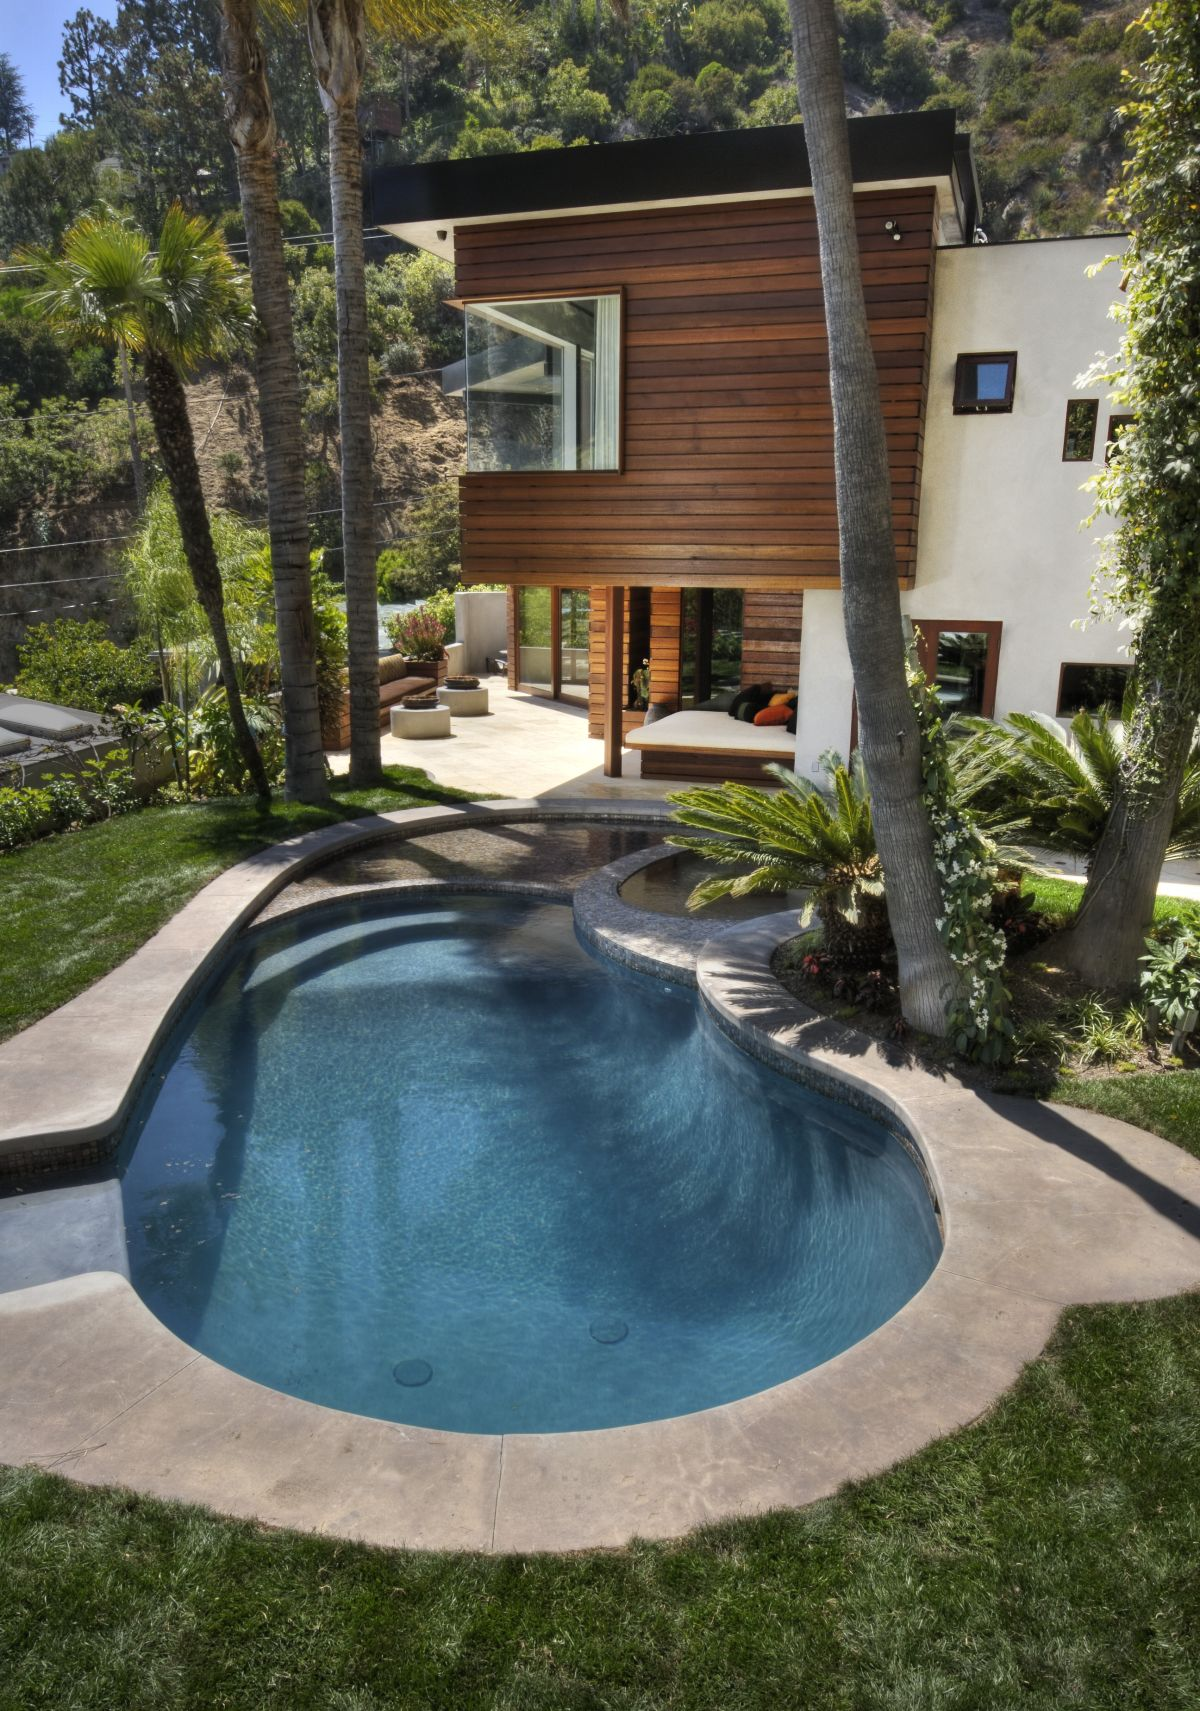 west-hollywood-residence-by-fer-studio-07